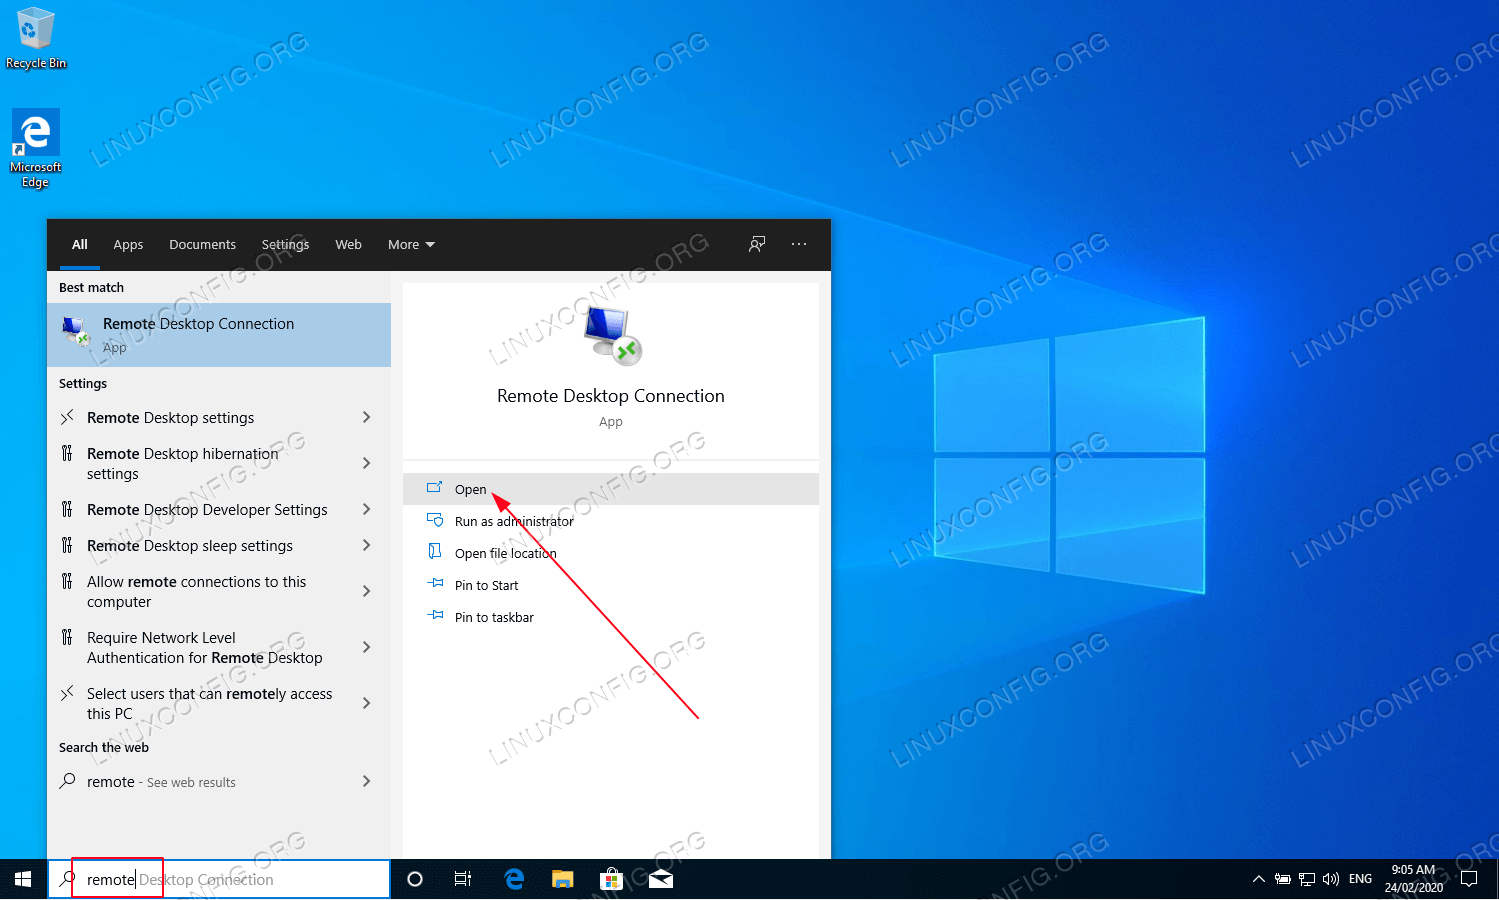 Move to Windows 10 host and open the Remote Desktop Connection client.